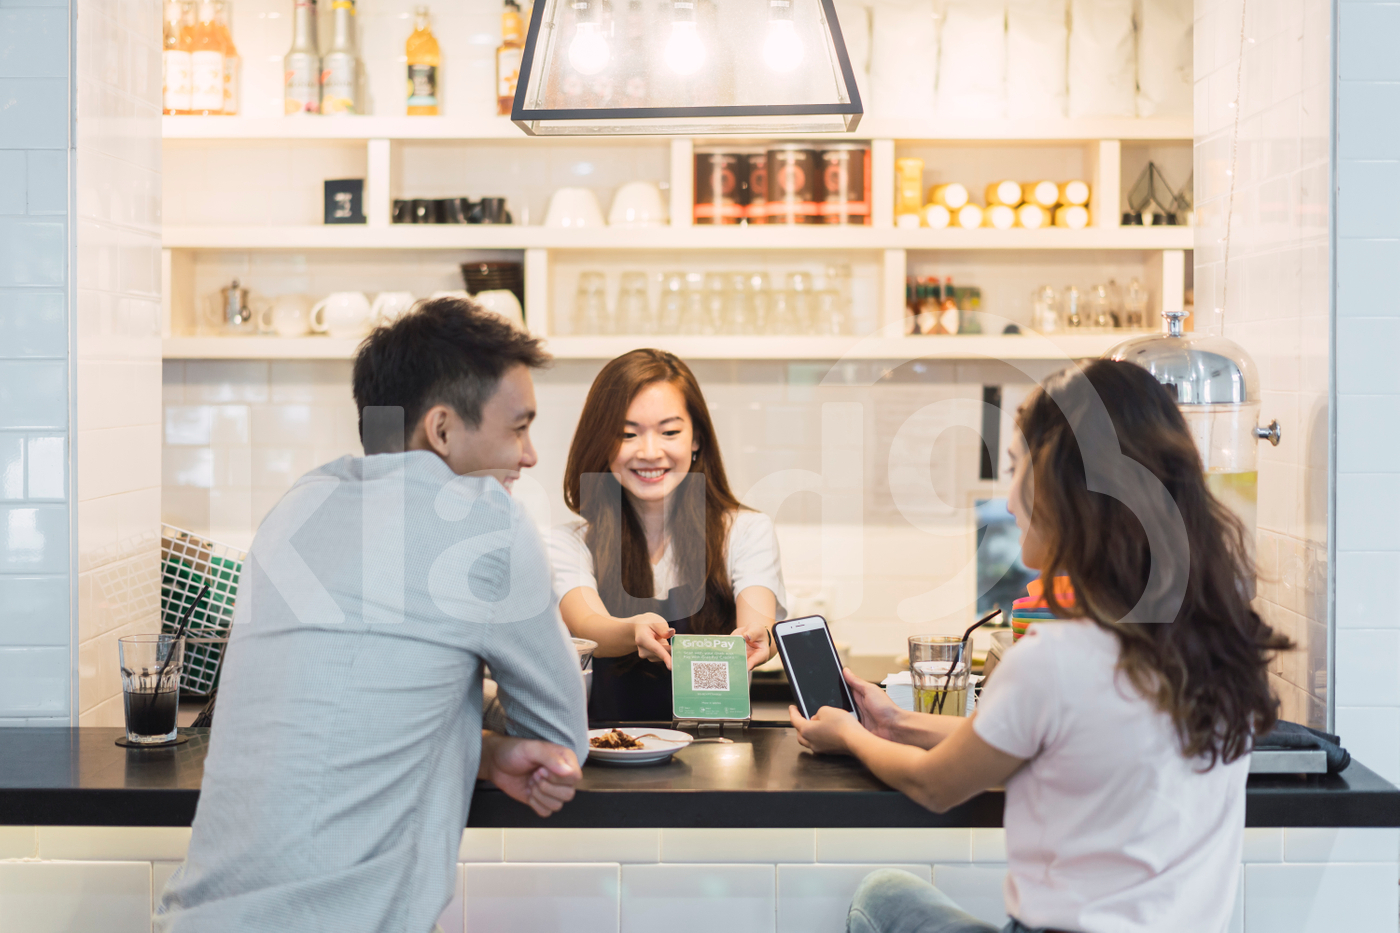 Couple at coffee shop making e-wallet payment